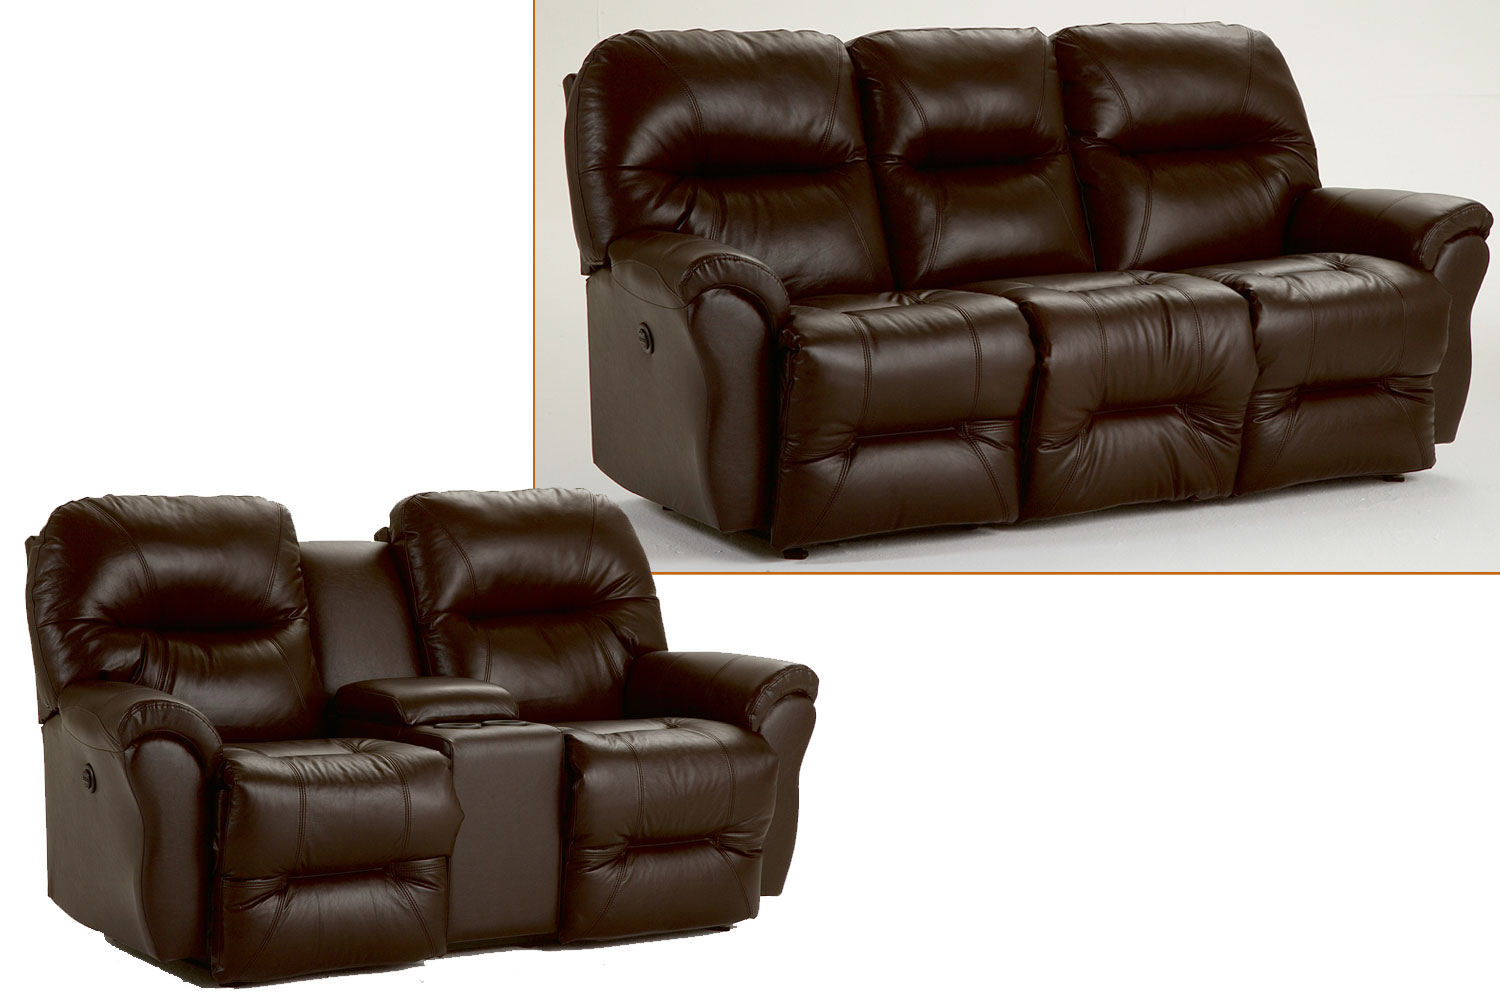 Reclining jasen 39 s fine furniture since 1951 Leather loveseat recliners